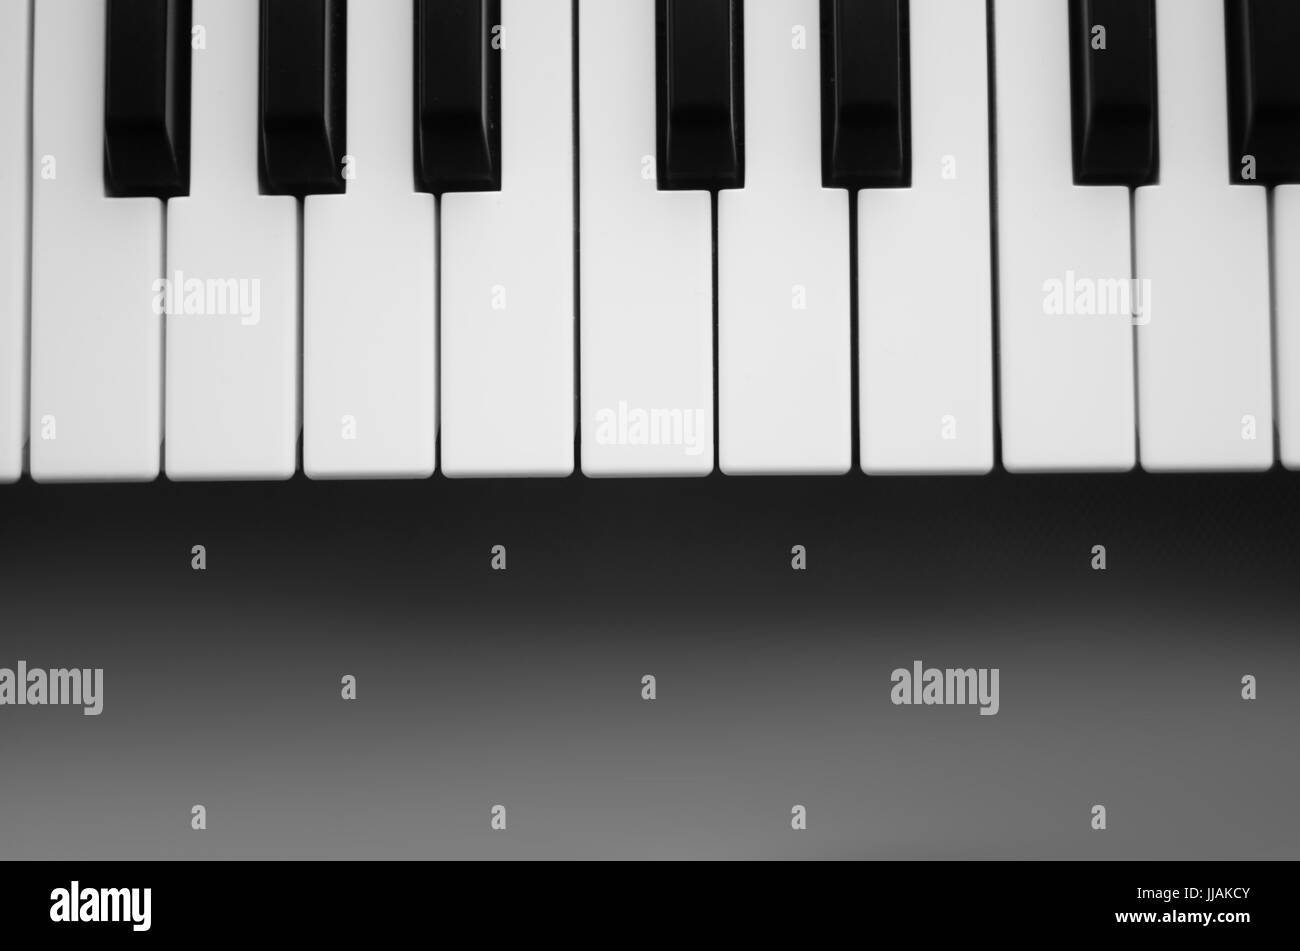 Keyboard synthesizer on a gray background. Black and white photo. View from above - Stock Image